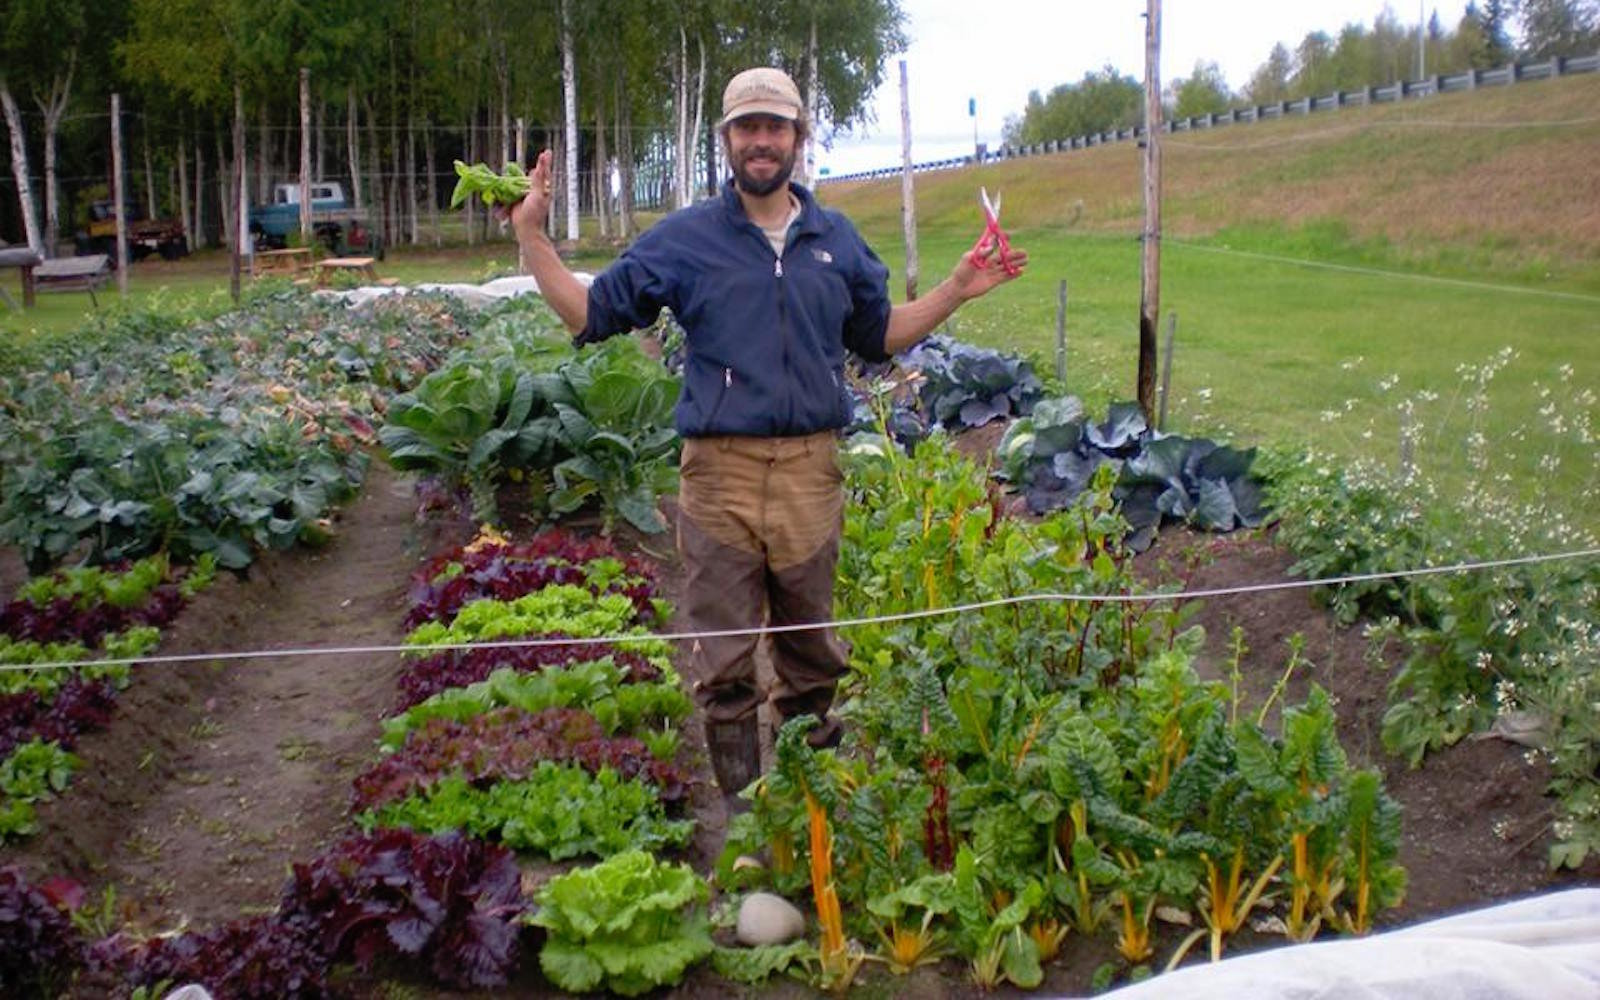 Stay at Denali Organic Growers